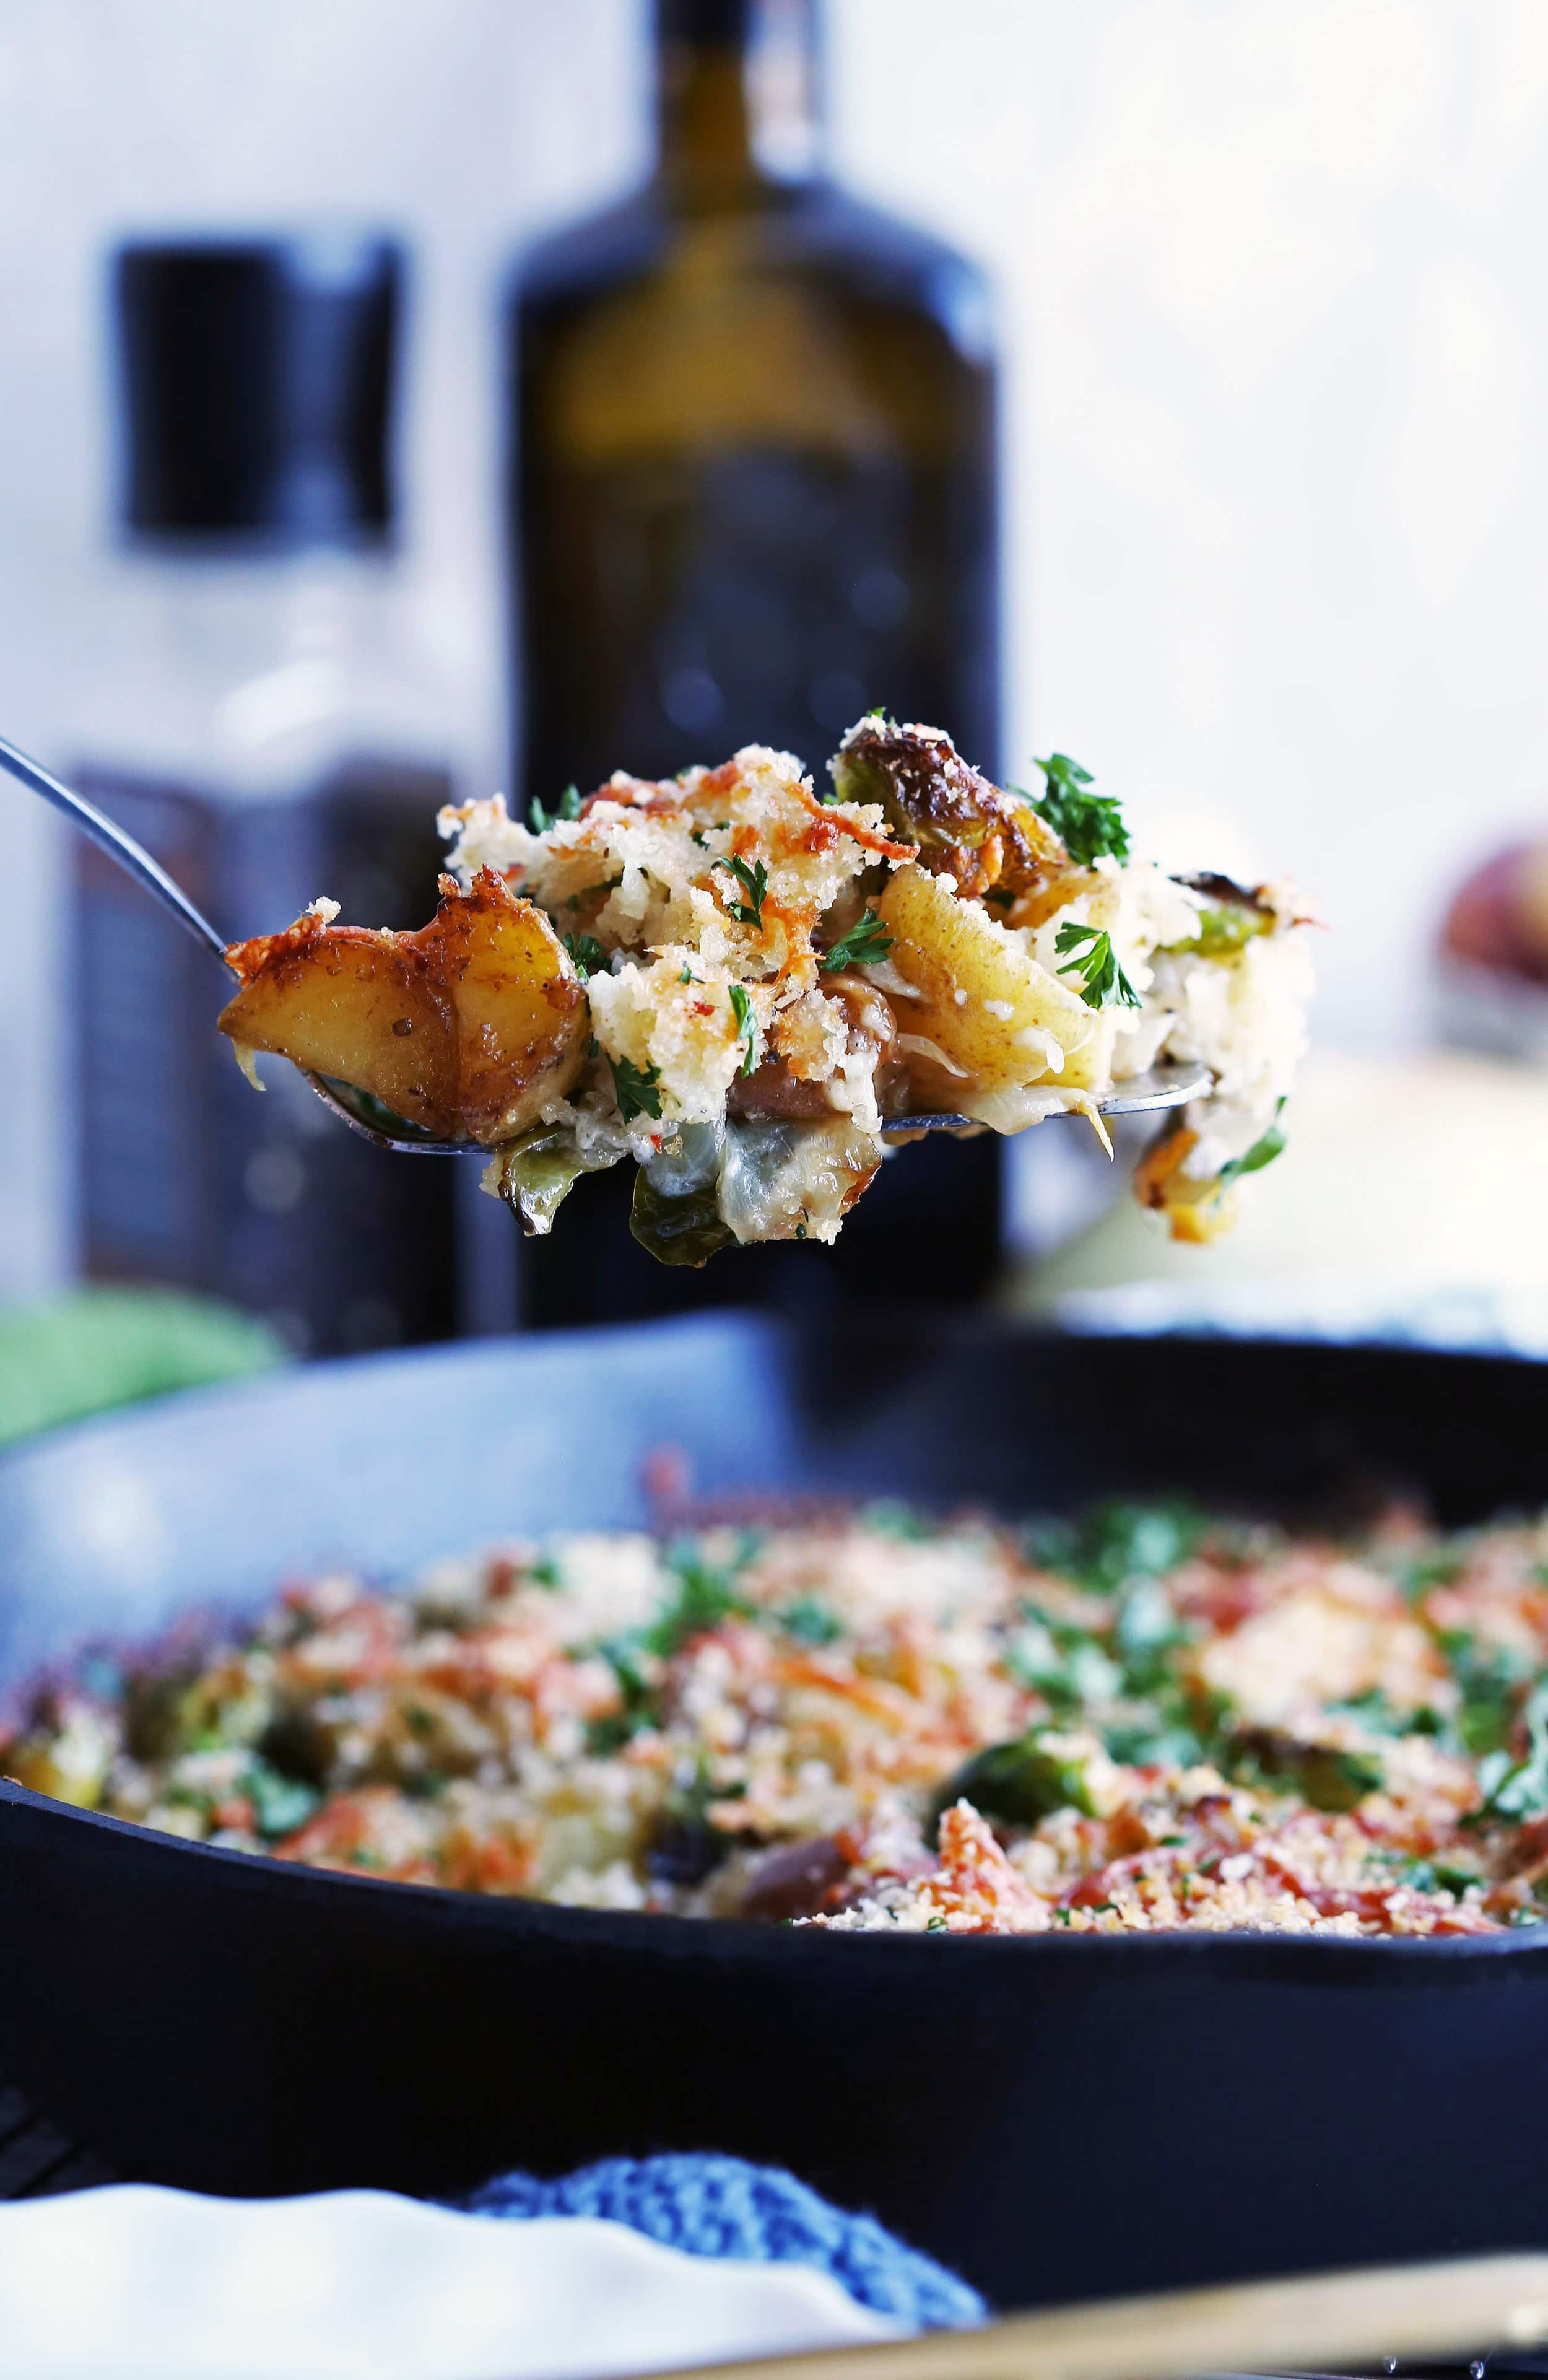 A heaping scoop of Brussels Sprouts and Potato Gratin on a metal spatula held over a large cast iron skillet with more gratin in it.